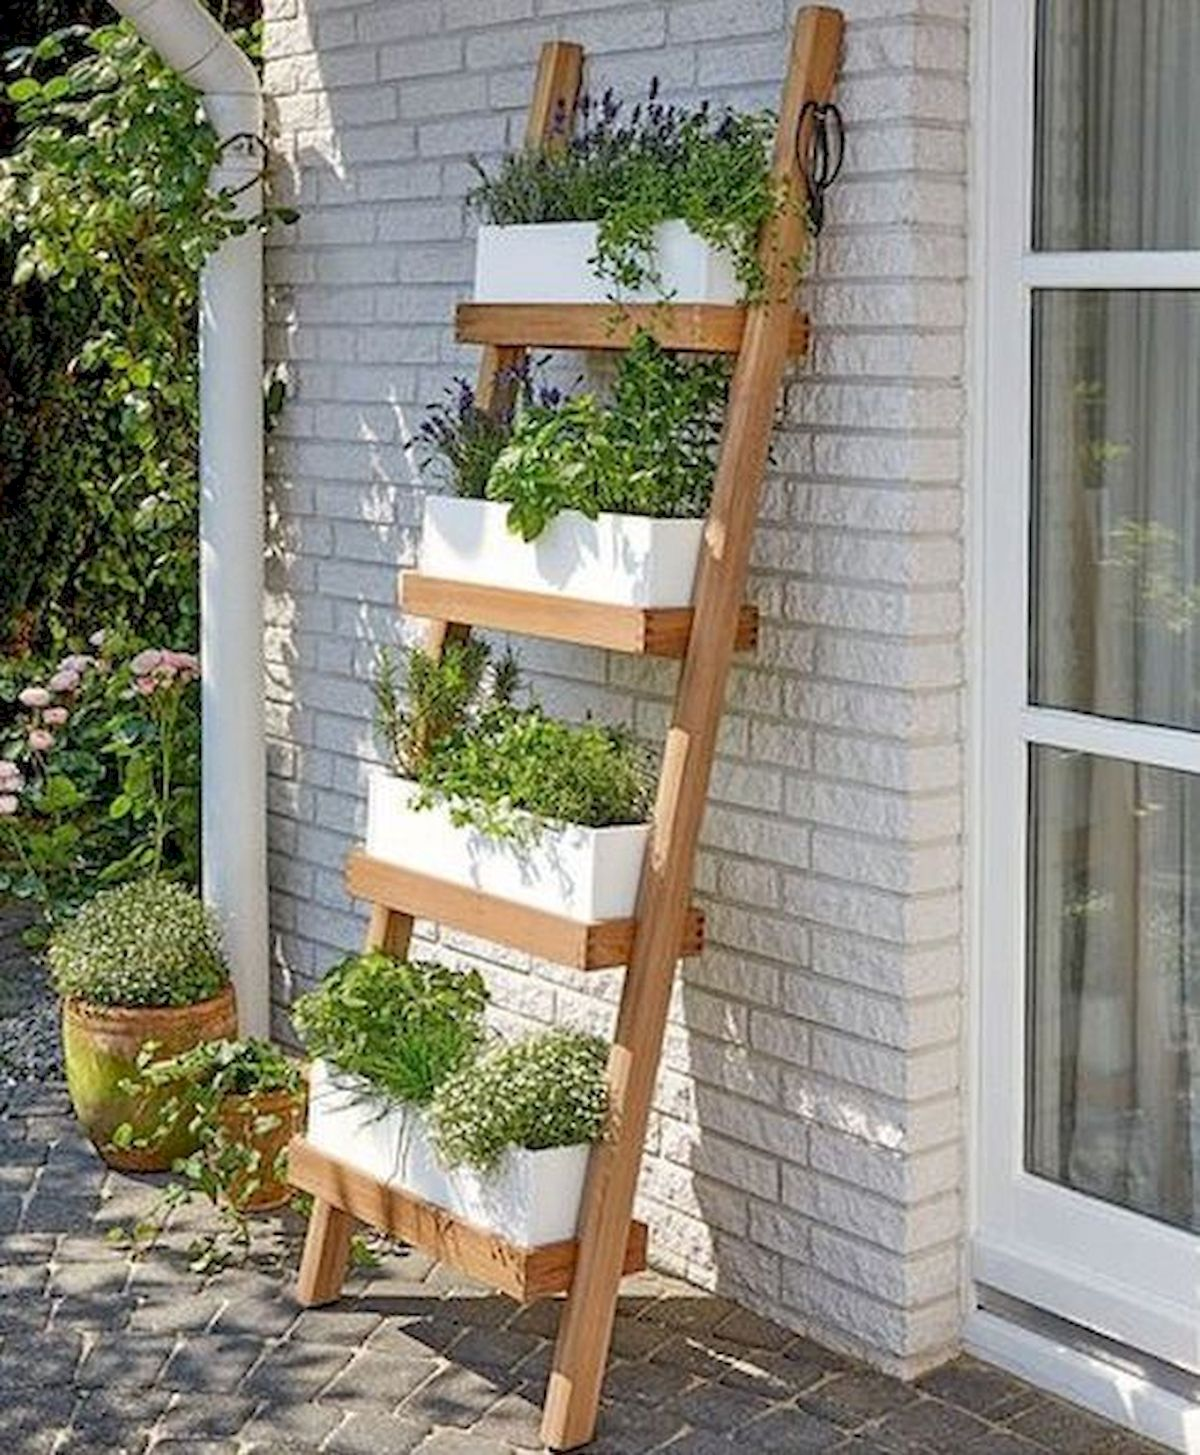 Best 20 Herb Garden Design 2017: Ladder In The Garden Design Ideas And Remodel